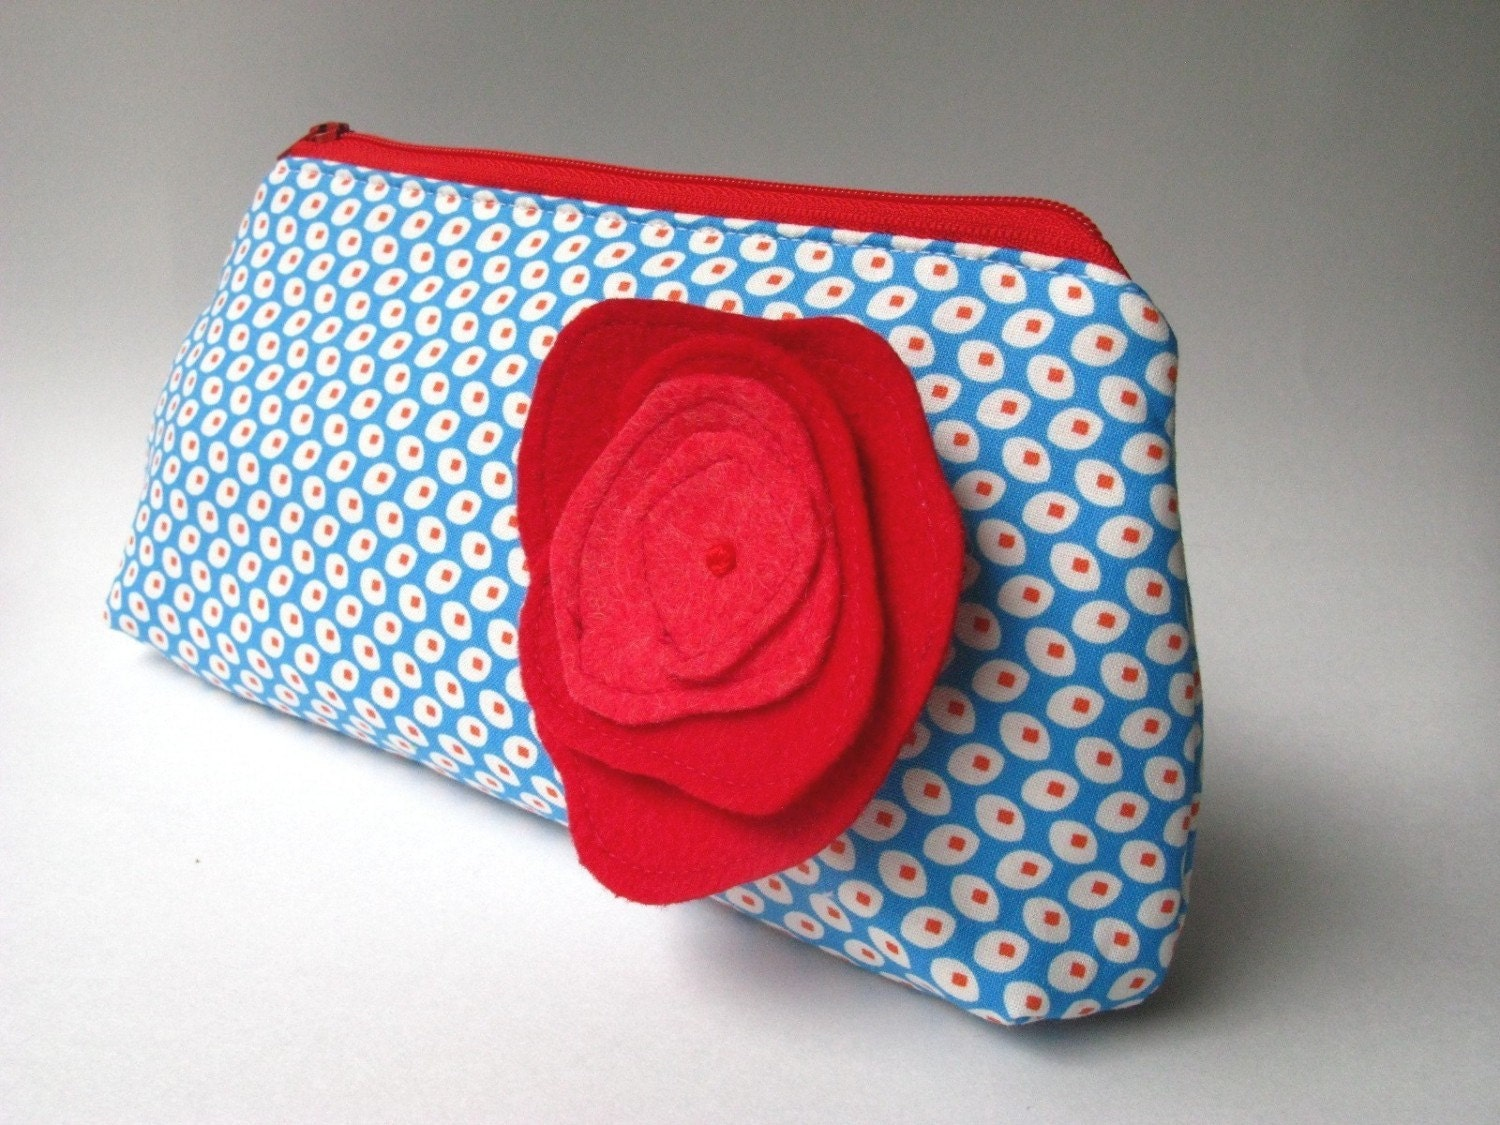 Zipper Clutch - Frenchy in Red and Blue Dots with Poppy Brooch